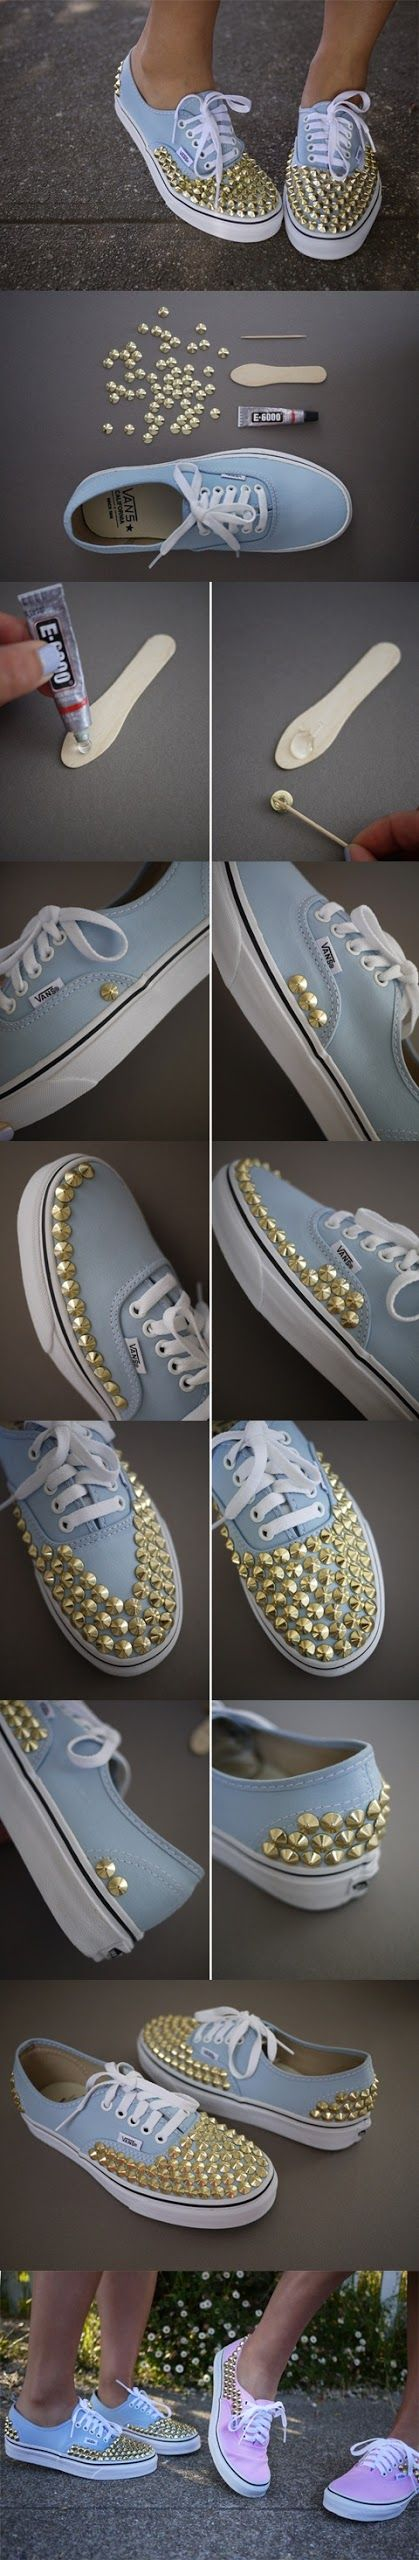 diy-studded-sneakers